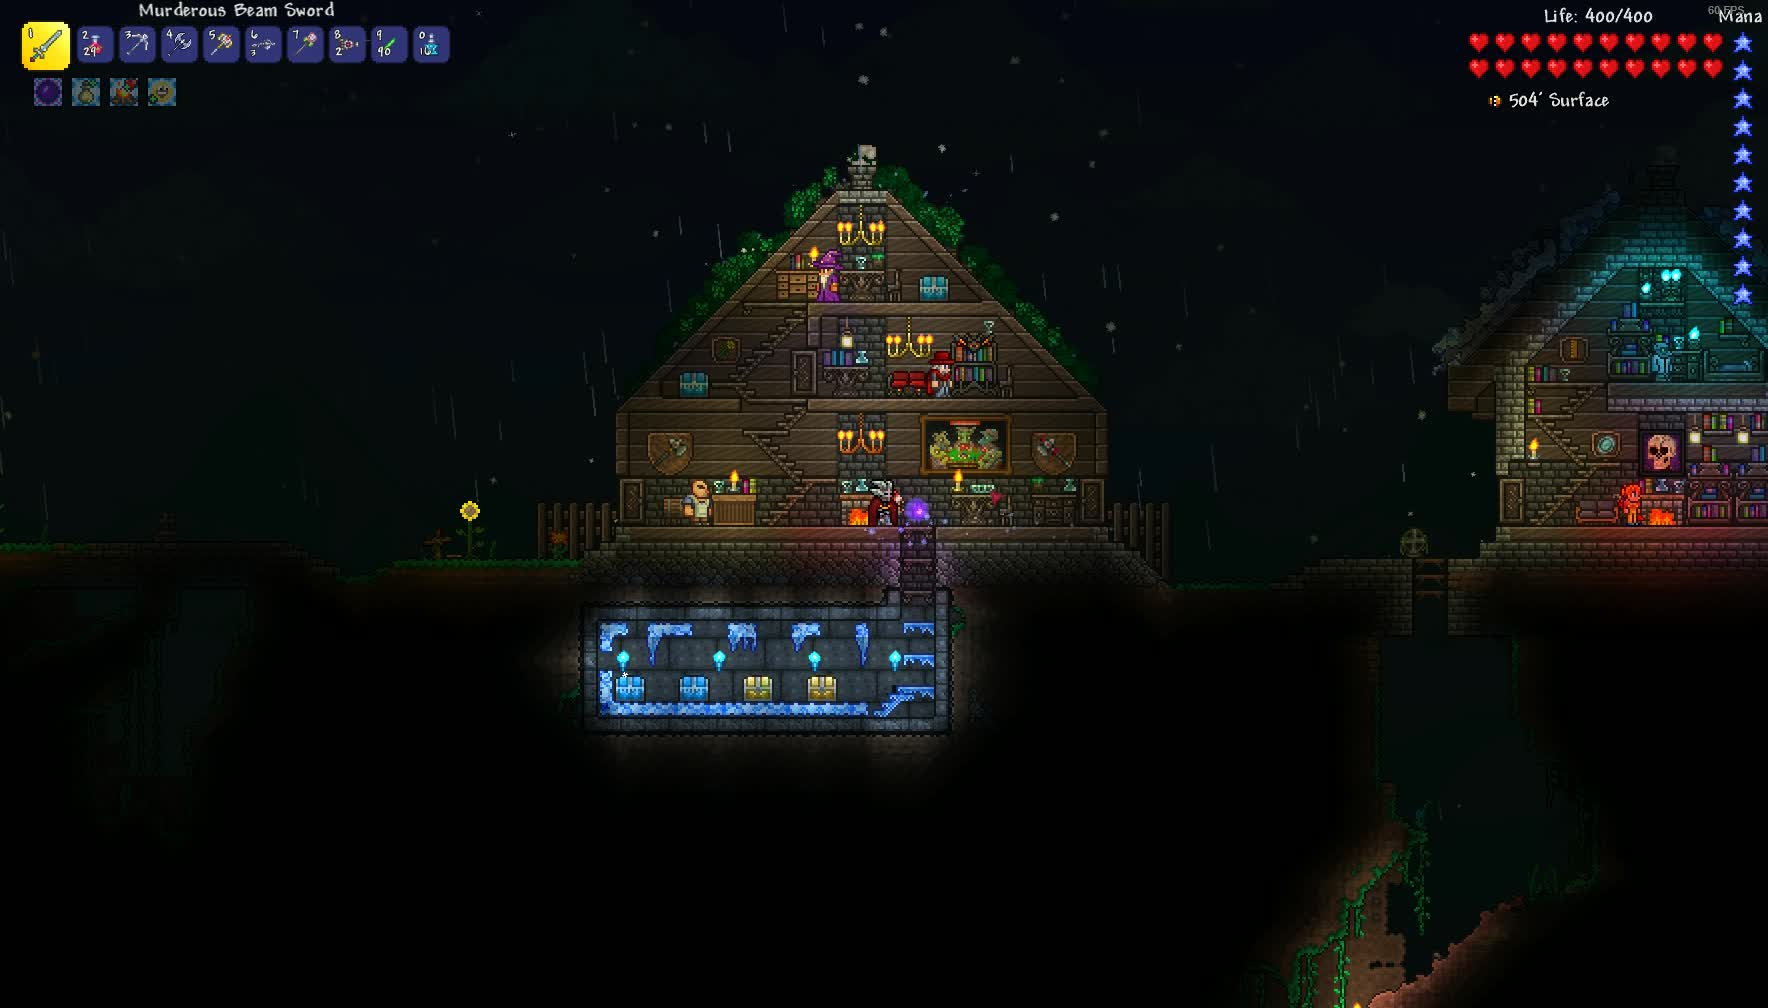 terraria, bet you didnt expect that GIFs